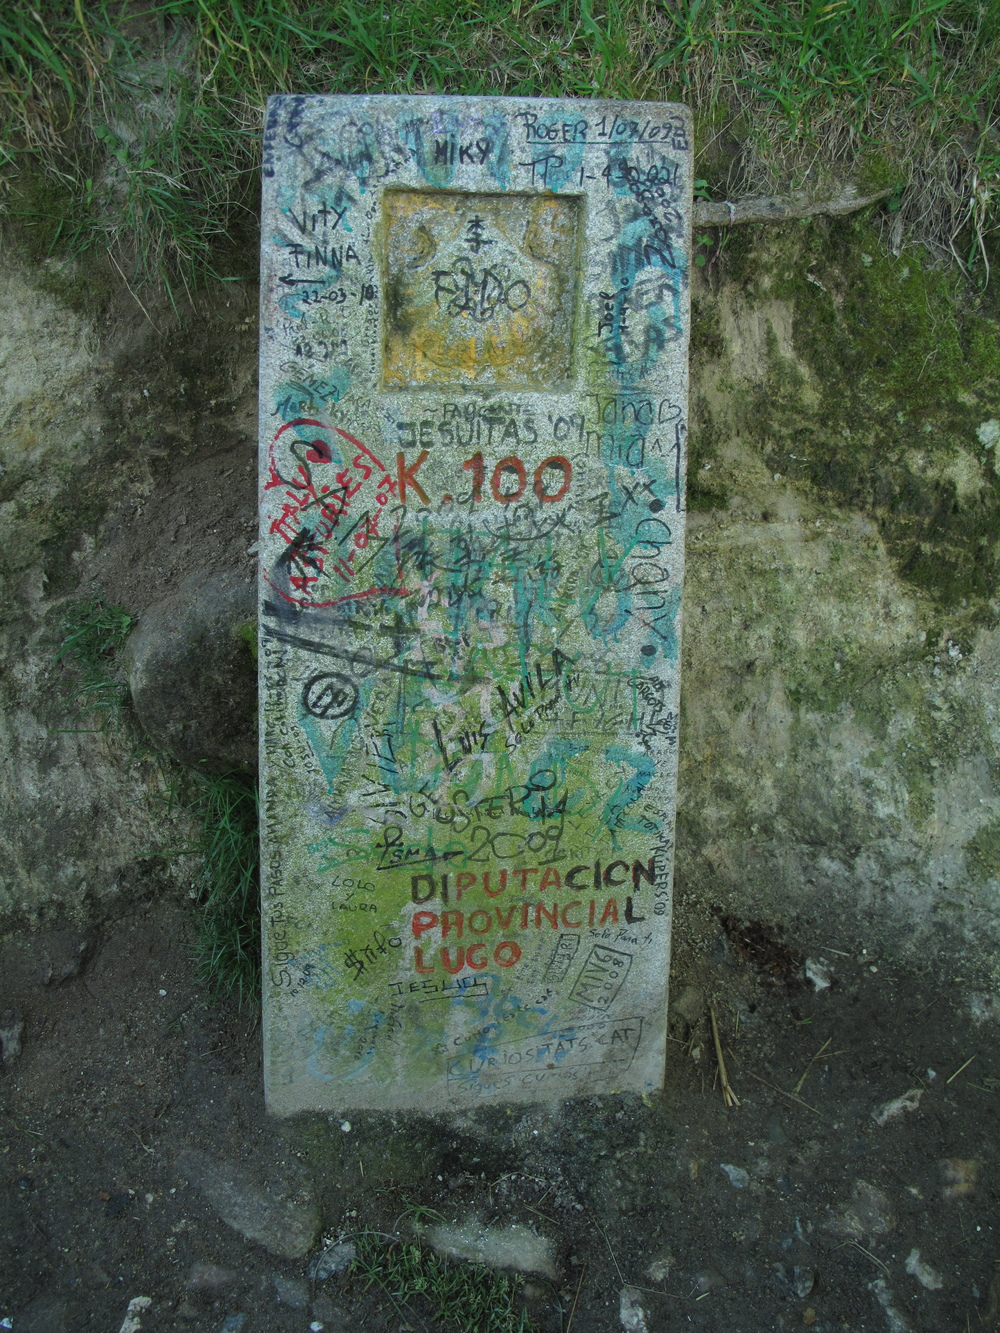 Technically, Sarria is a little past the 100km mark on the Camino. I came across this shortly after leaving Barbadelo, if I remember correctly.